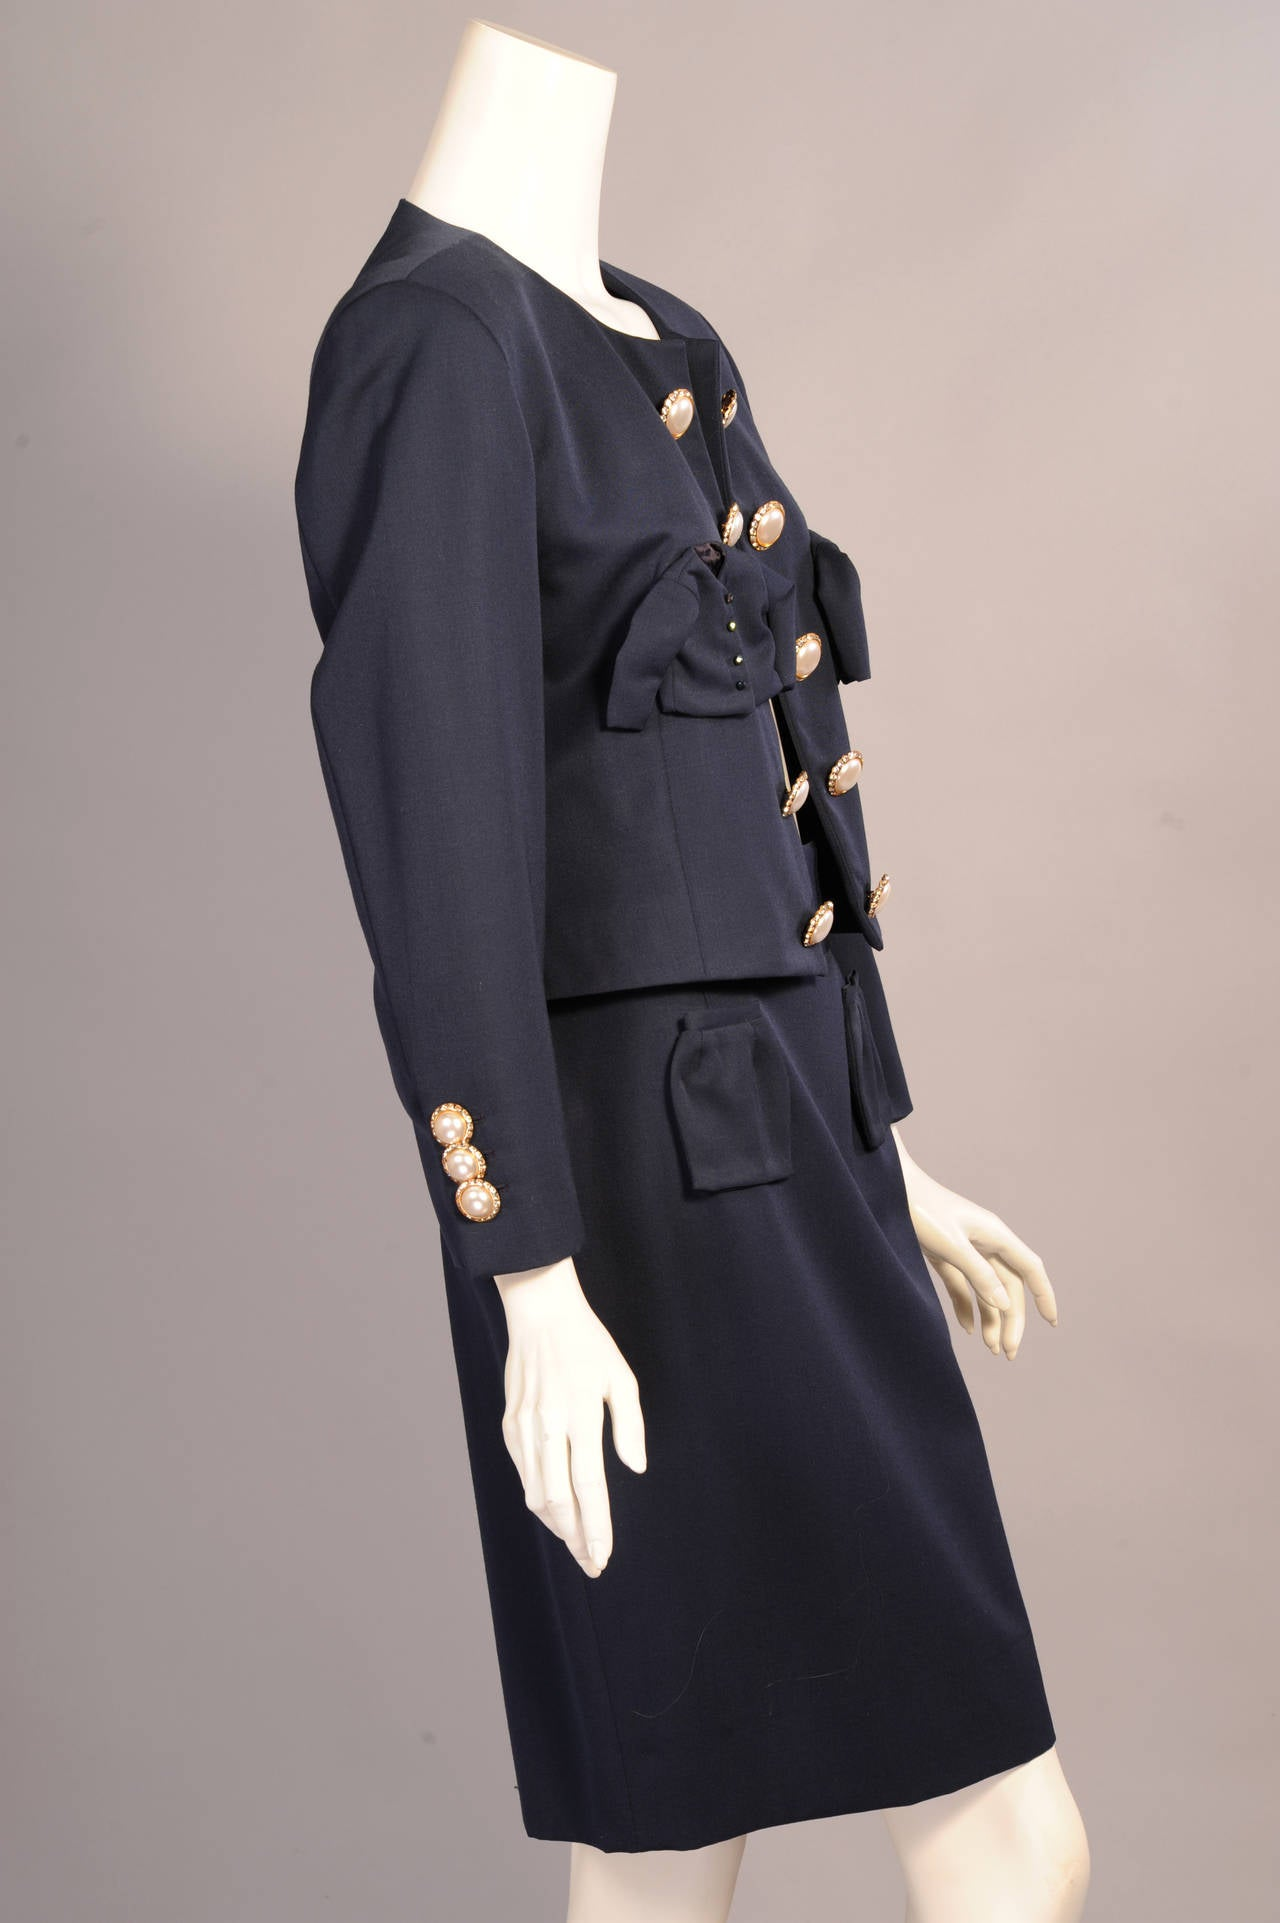 Iconic & Ironic Moschino Couture Suit, Chanel Inspired Suit Pockets For Sale 1